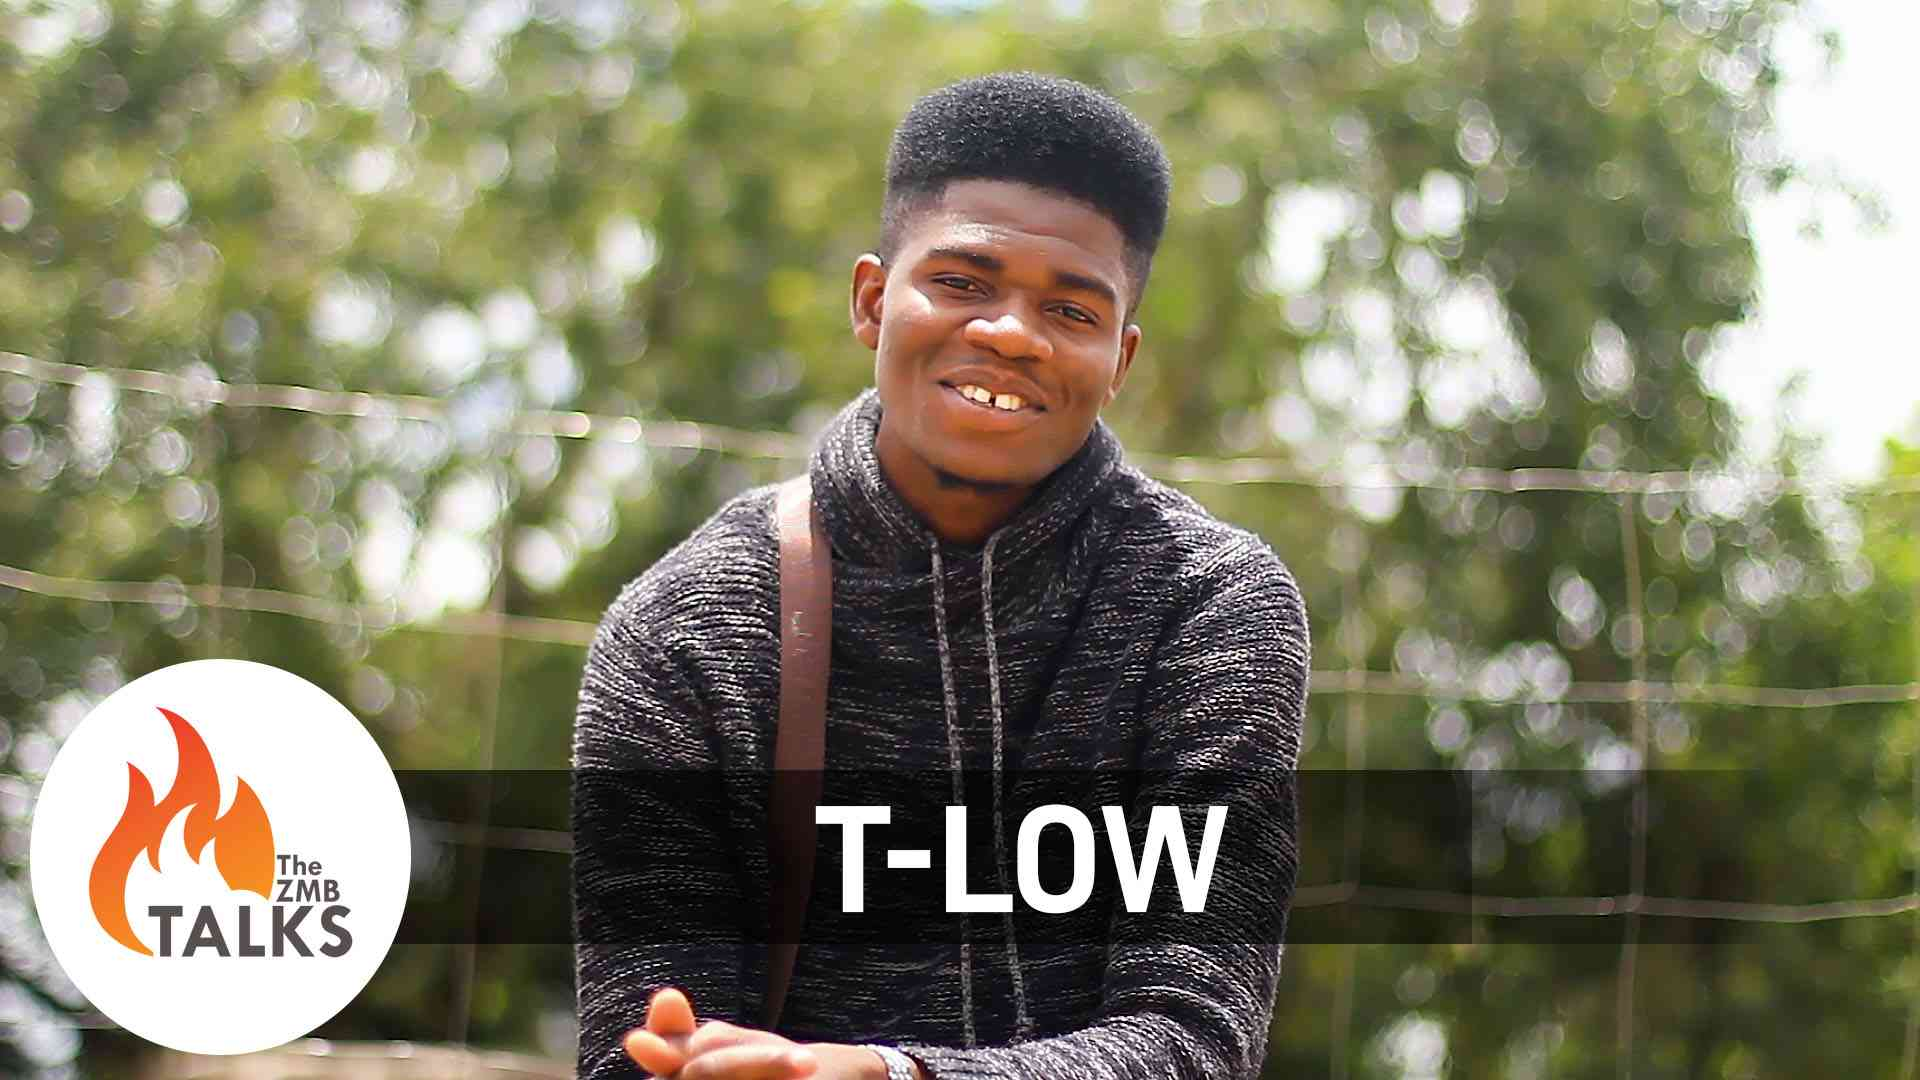 T-Low talks his Music Journey and more on #theZMBtalks